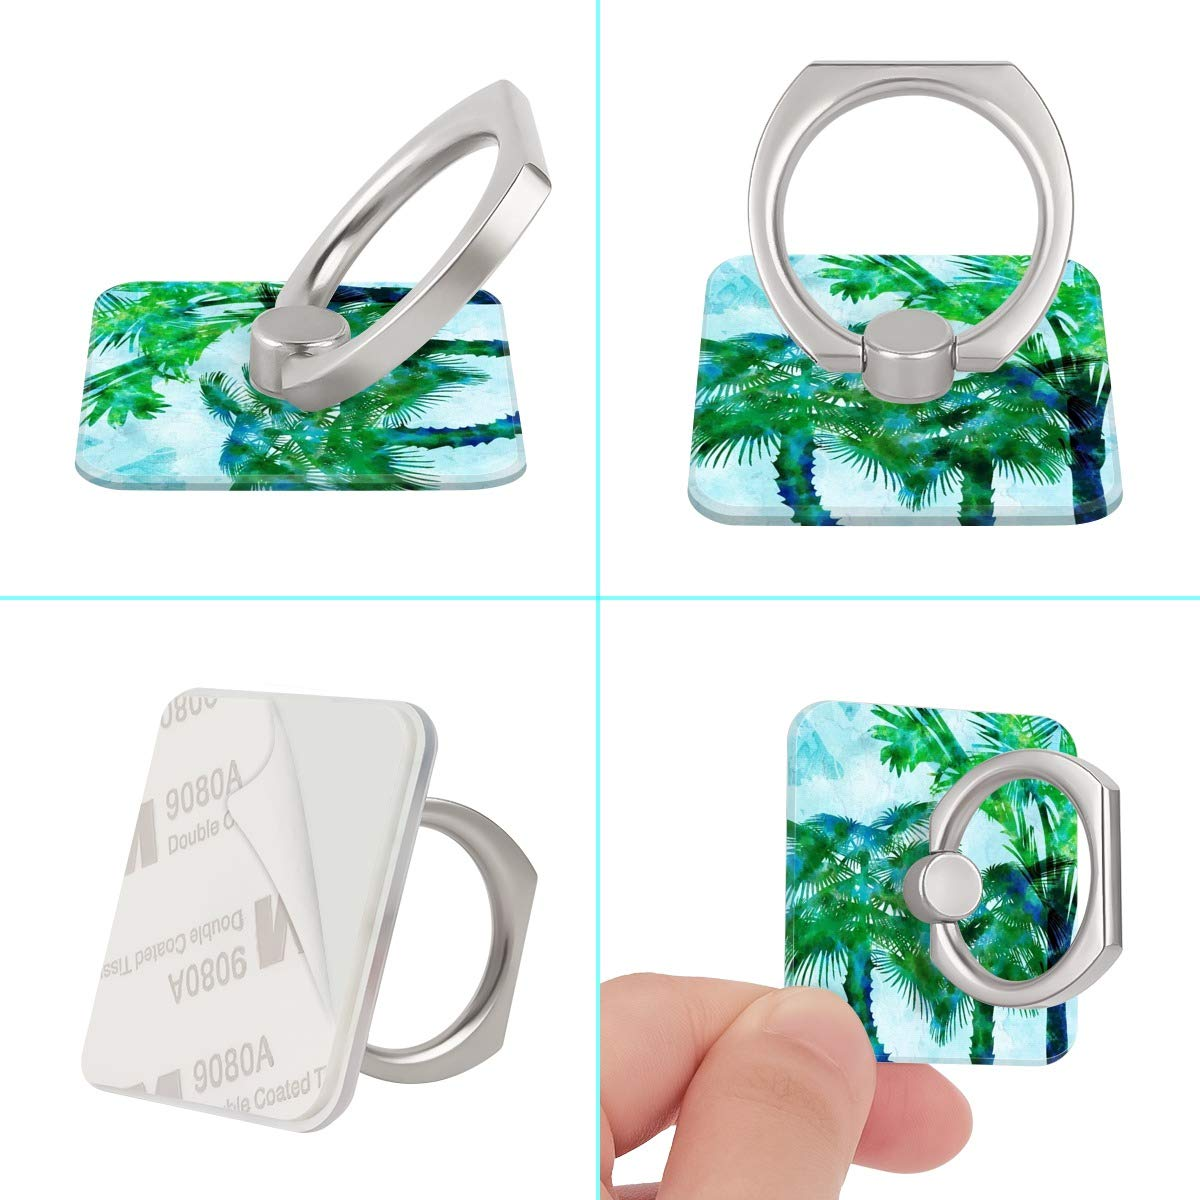 Watercolor Painting Palm Tree Ring Phone Holder Stand Mounts for iPhone iPad, Samsung Other Smartphones by BoBuBa-L (Image #2)